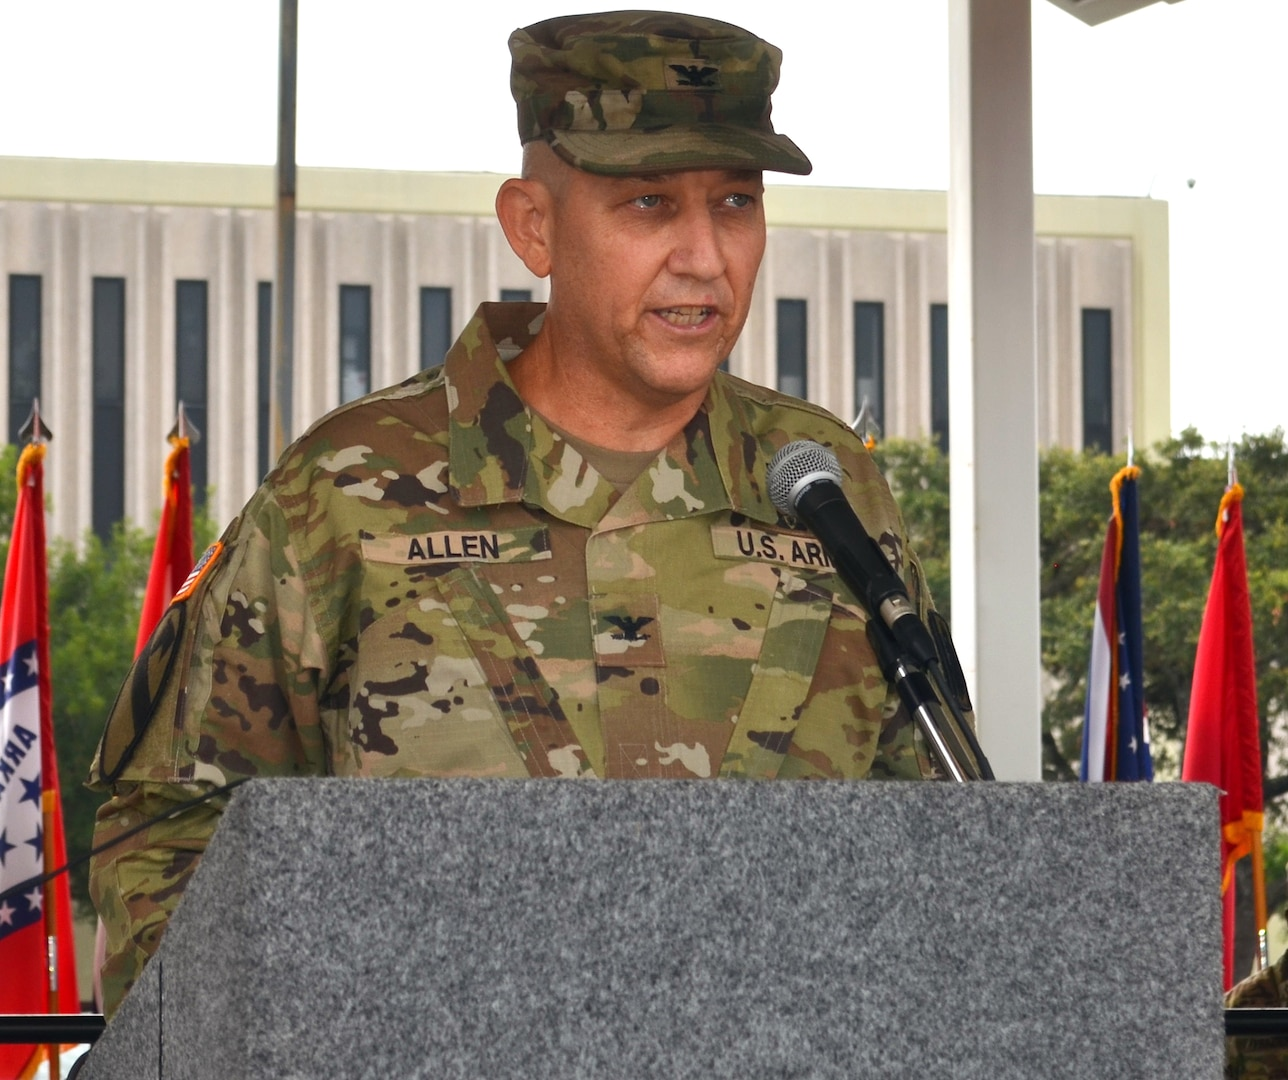 Col. Daniel Allen gives his first remarks as commander of the 470th Military Intelligence Brigade during the brigade's change of command ceremony at the MacArthur Parade Field at Joint Base San Antonio-Fort Sam Houston July 9.